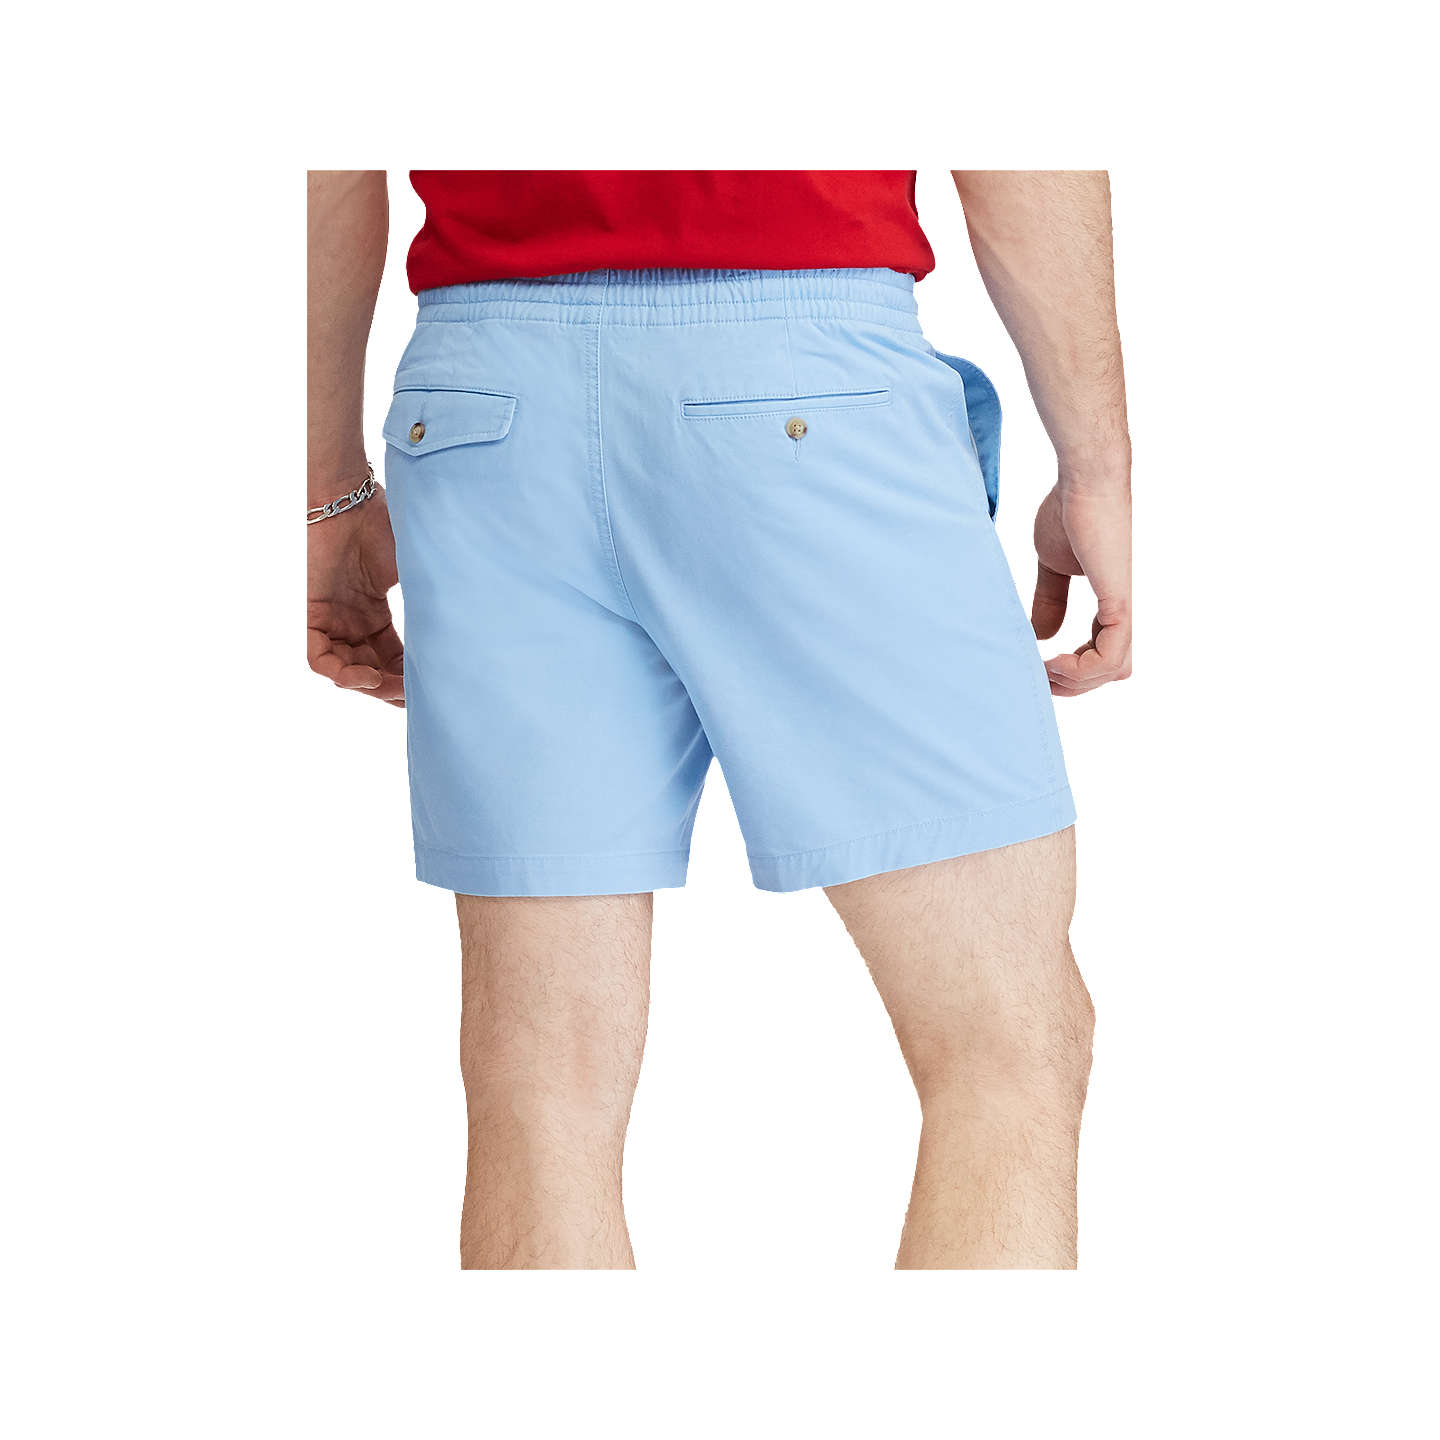 BuyPolo Ralph Lauren Classic Fit Polo Prepster Shorts, Blue Lagoon, S Online at johnlewis.com